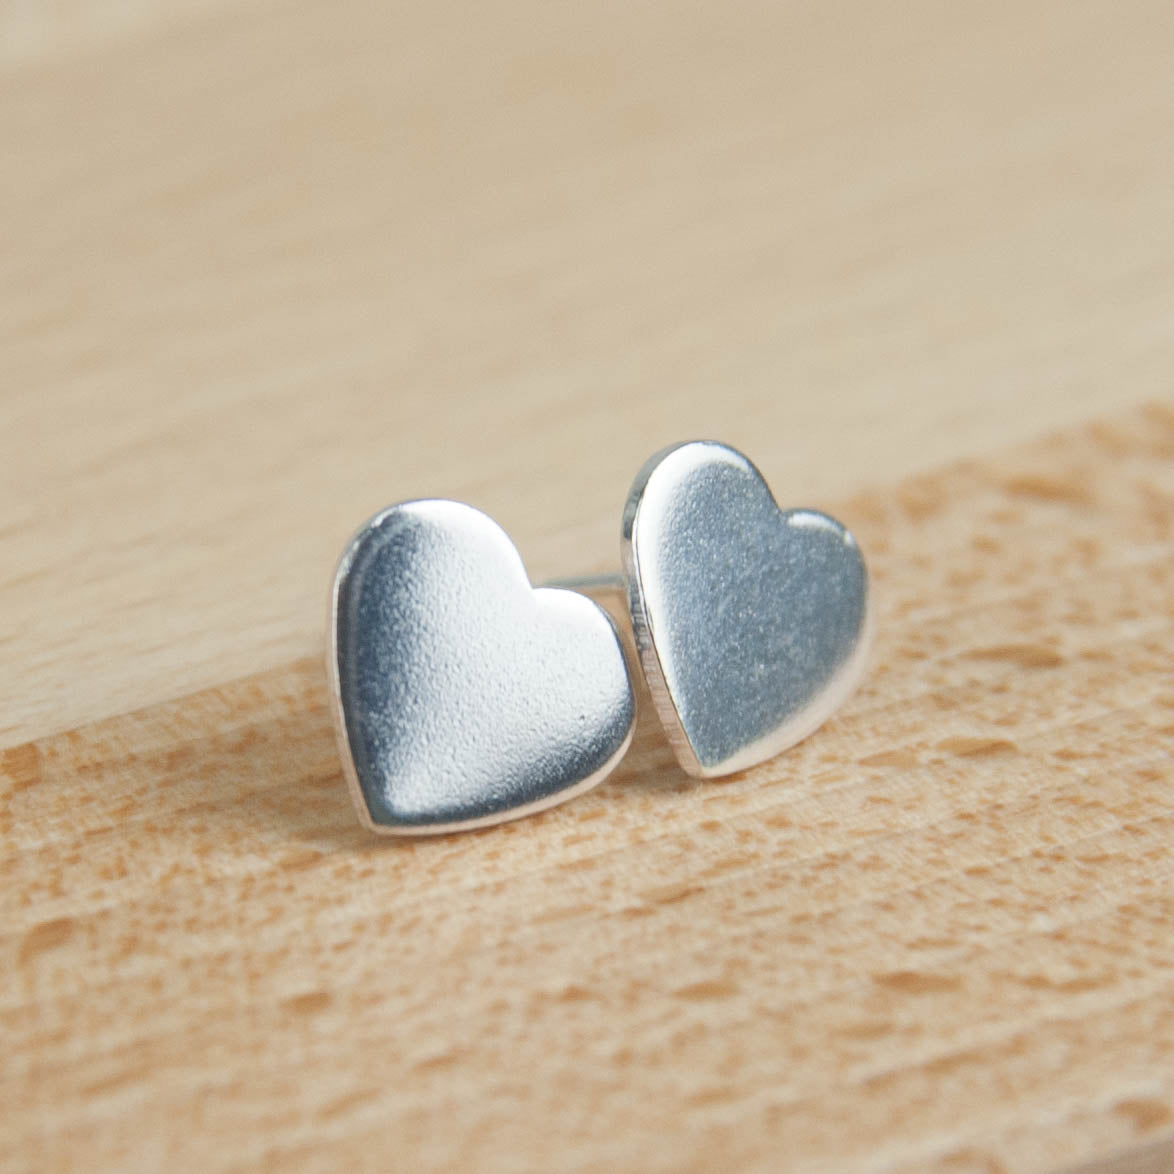 Belle & Bee sterling silver heart earrings